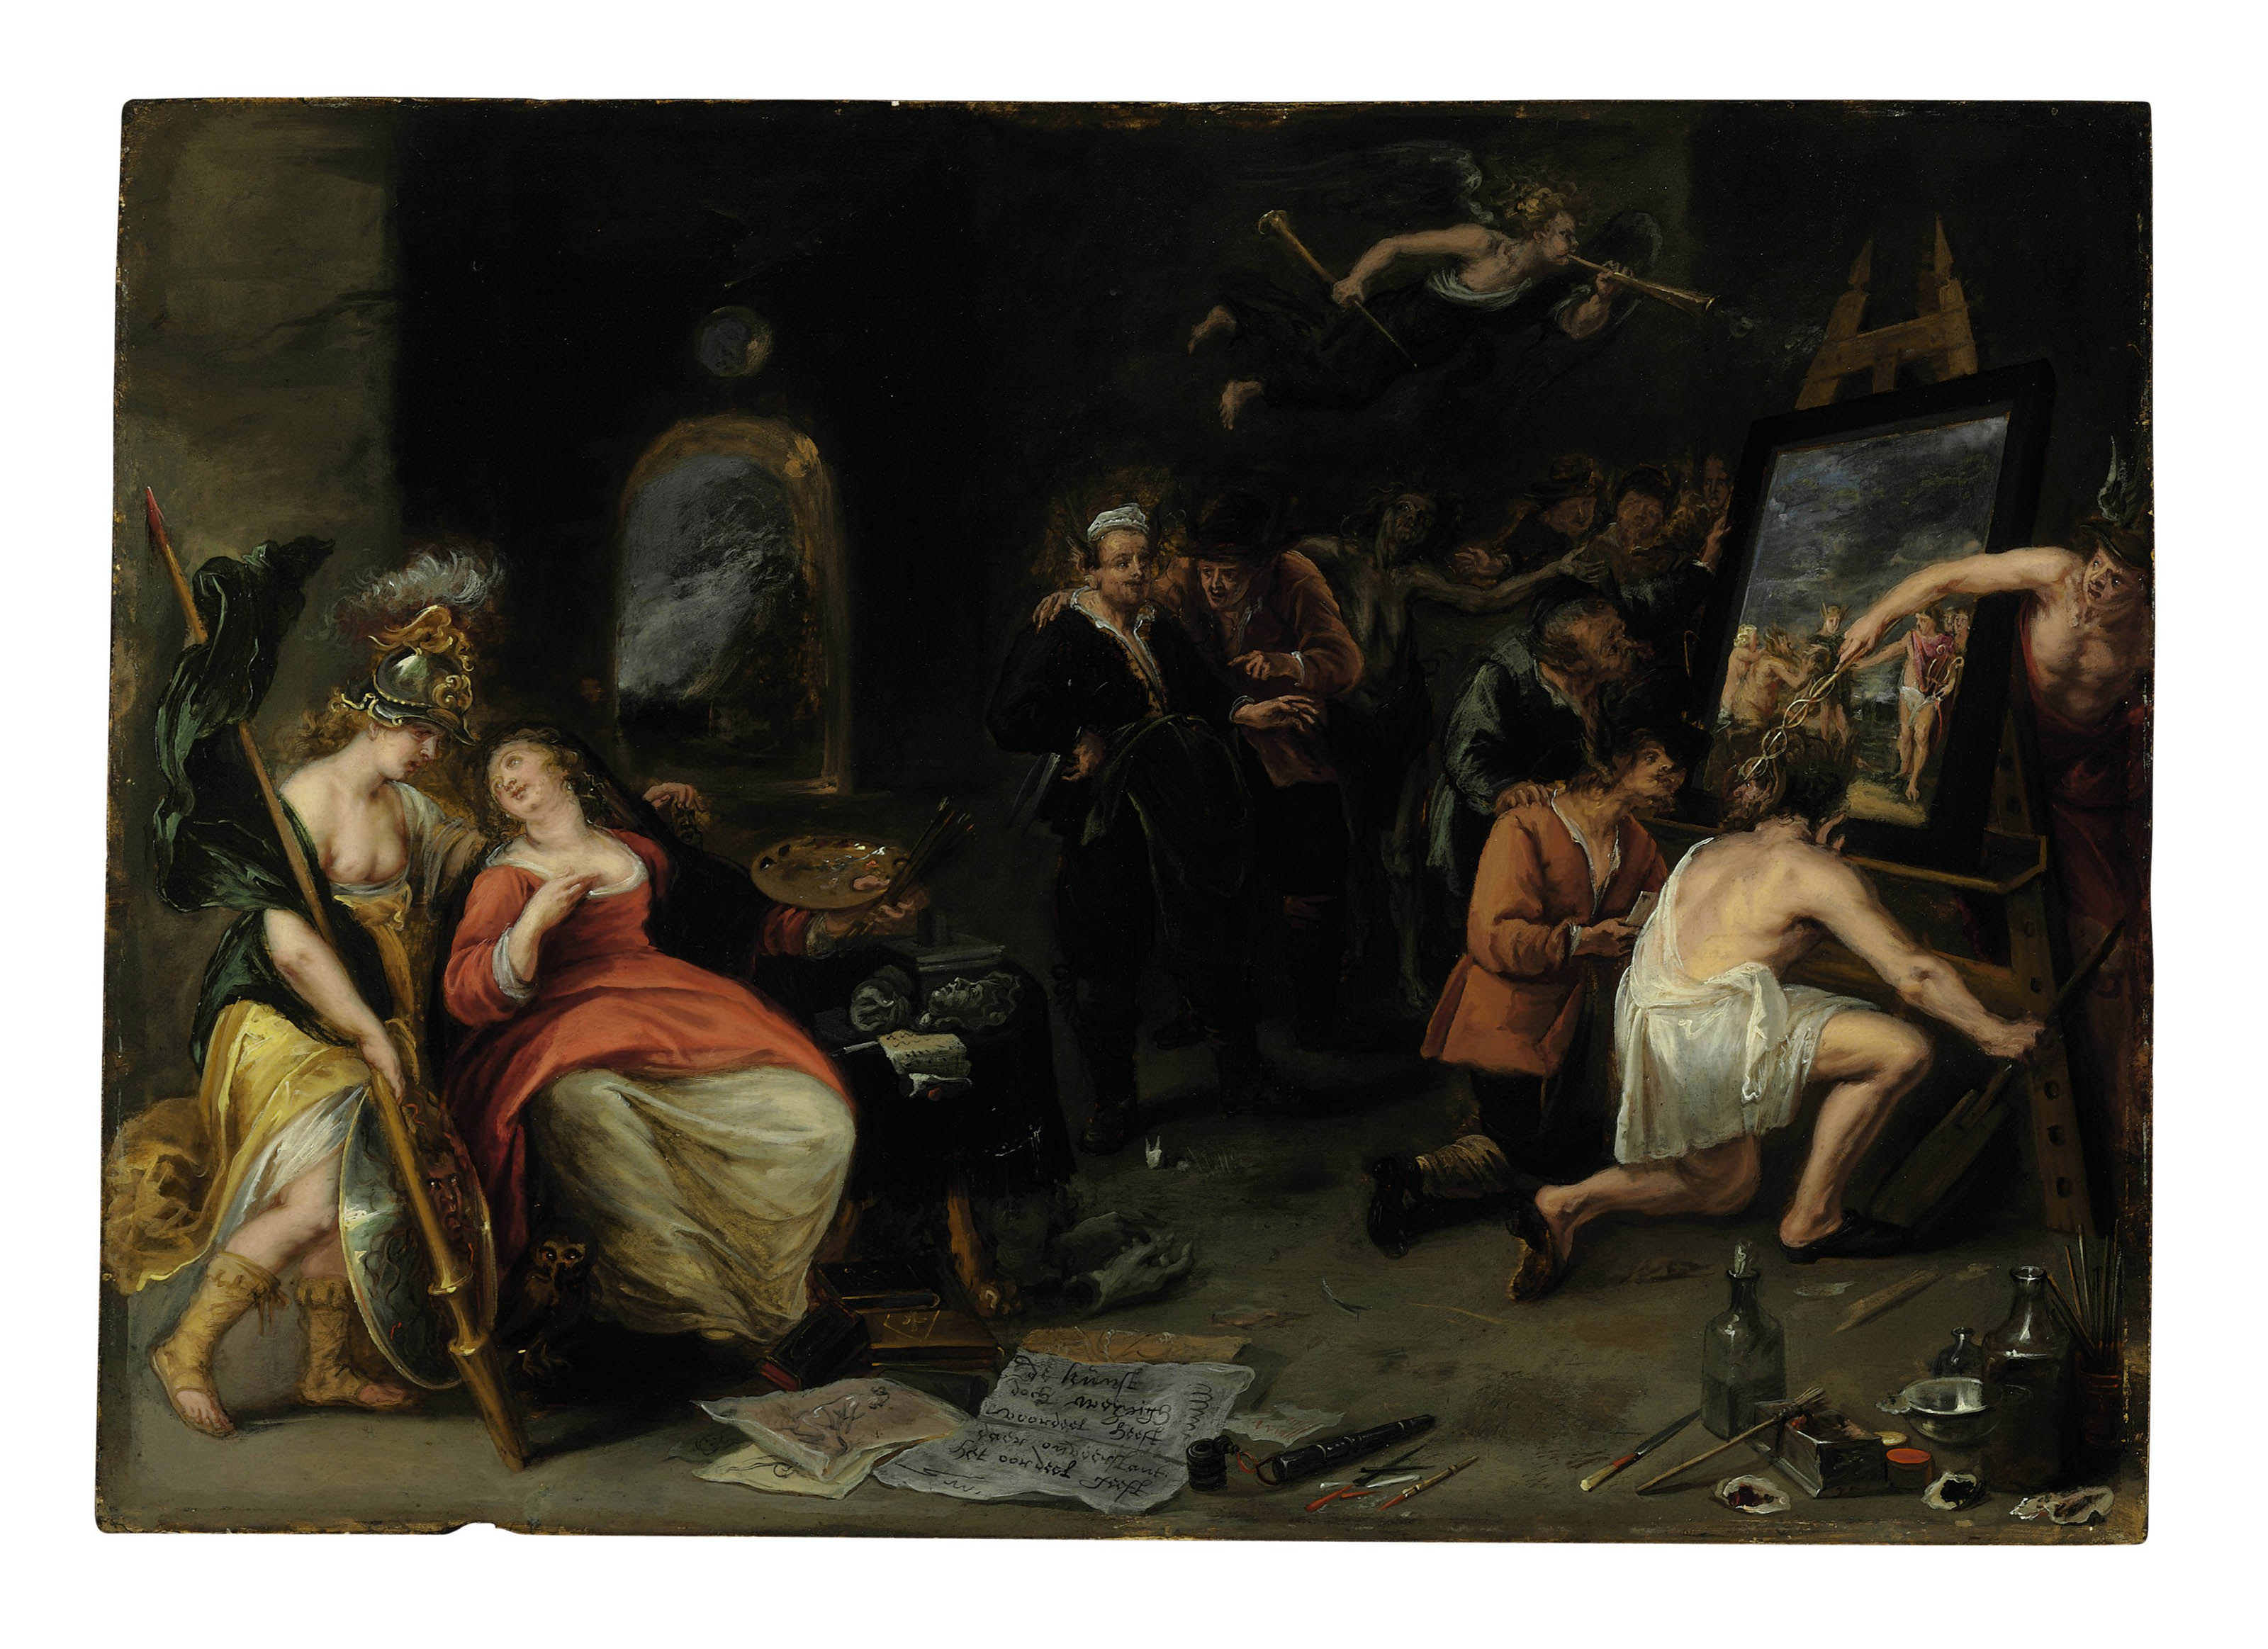 Minerva and Mercury protecting Painting against Ignorance and Calumny